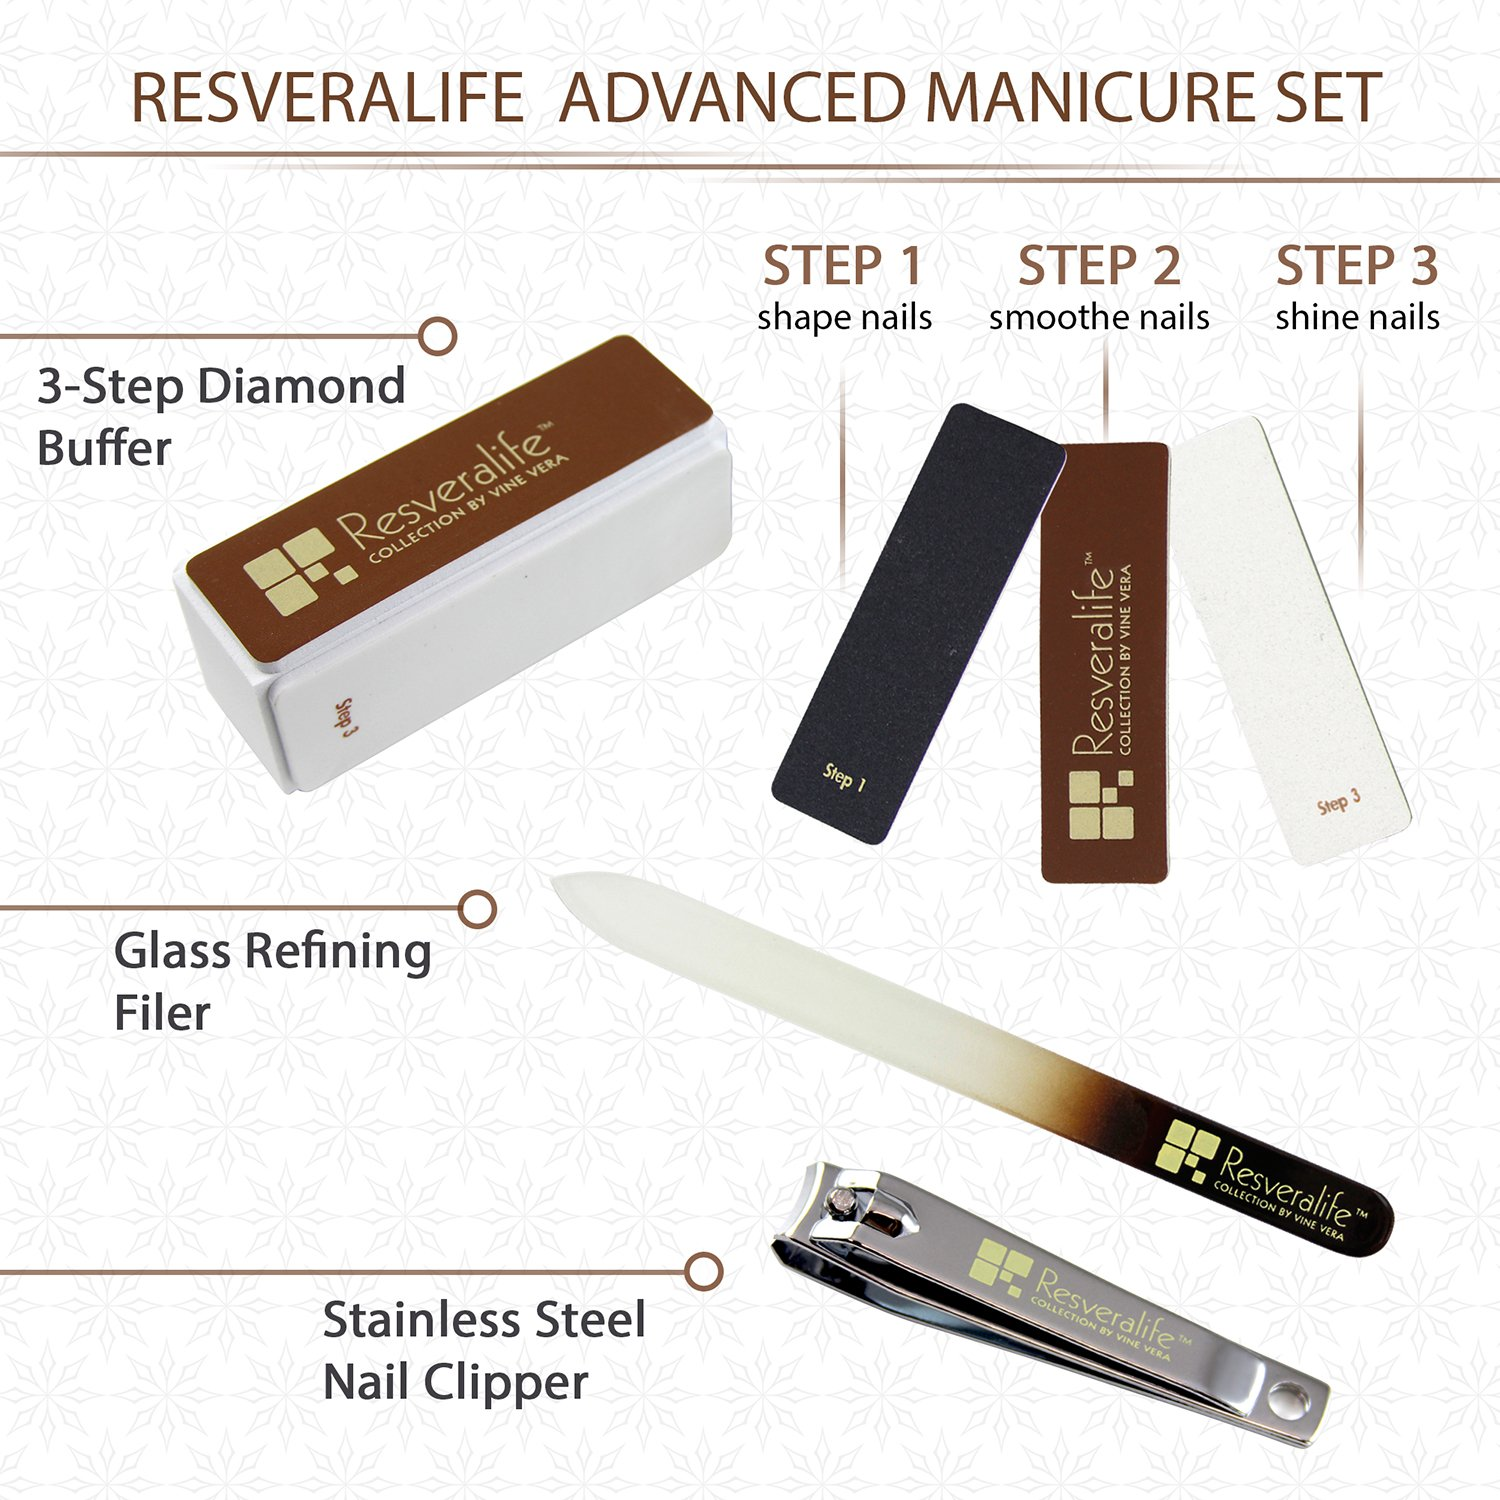 Amazon.com : Resveralife Advanced Nail Kit, Strong Durable Set for ...